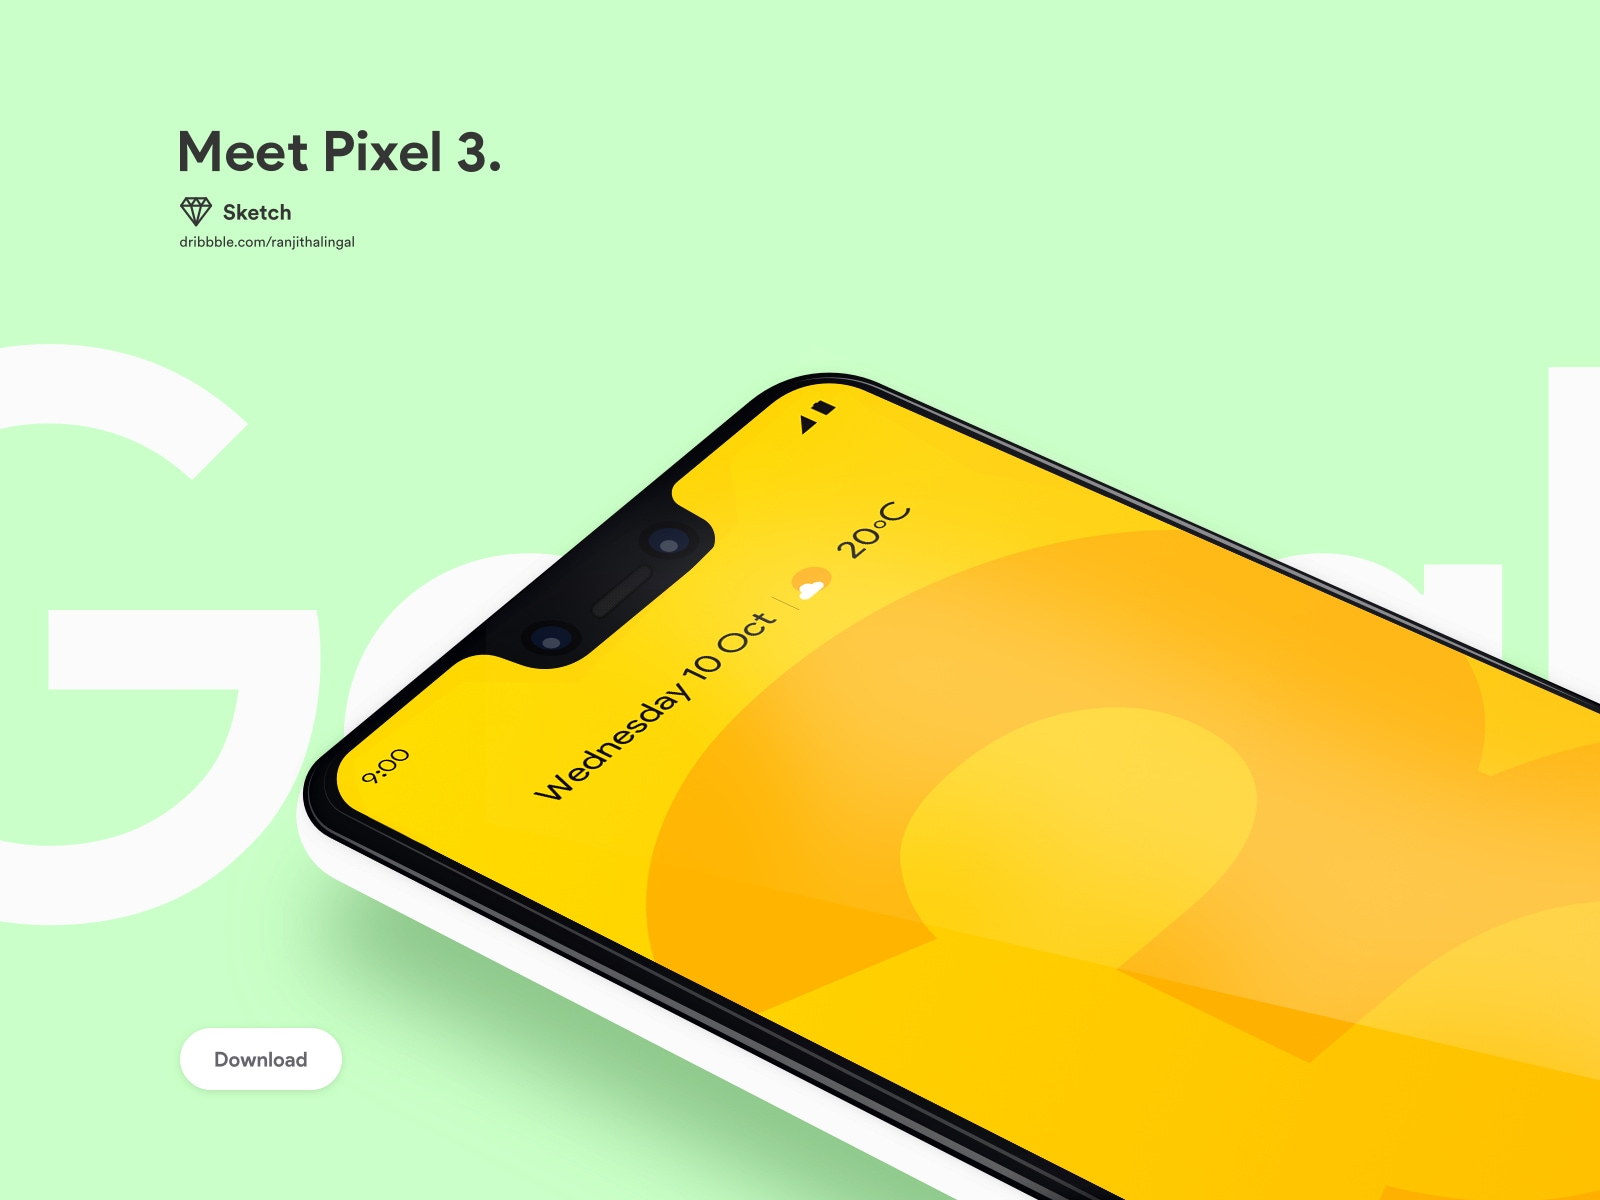 Google Pixel 3 Mockup - Using this free Google Pixel 3 Mockup Sketch file you can showcase your app design, presentation or add your own screenshots easily in Sketch. Pixel 3 Mockup is not only free but also have the premium look which makes your mobile UI design presentation stand out from the crowd!